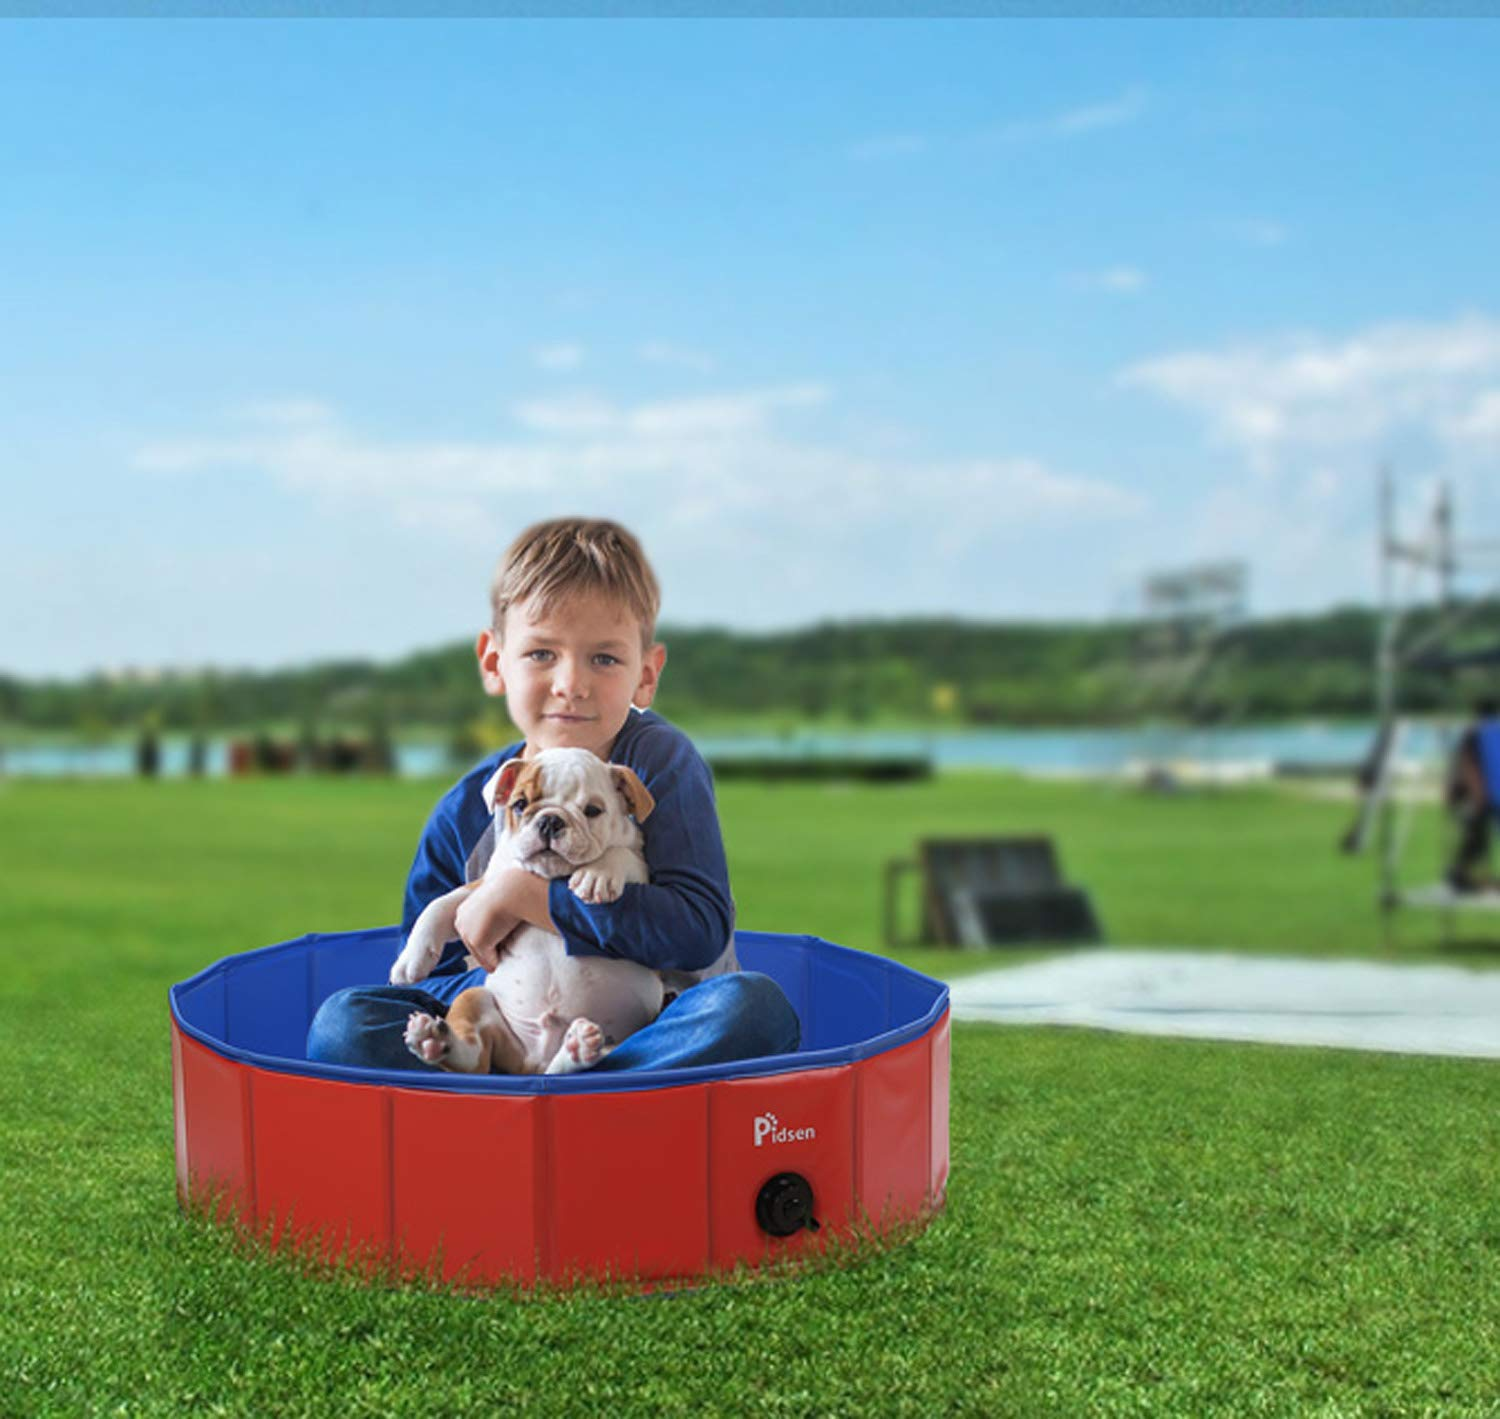 Red 31.5 31.5 7.9 Pidsen Foldable Dog Pet Bath Pool Pet Swimming Tub Collapsible Dog Pet Tub for Dogs, Cats or Kids (47.2 47.2 11.8 , orange)